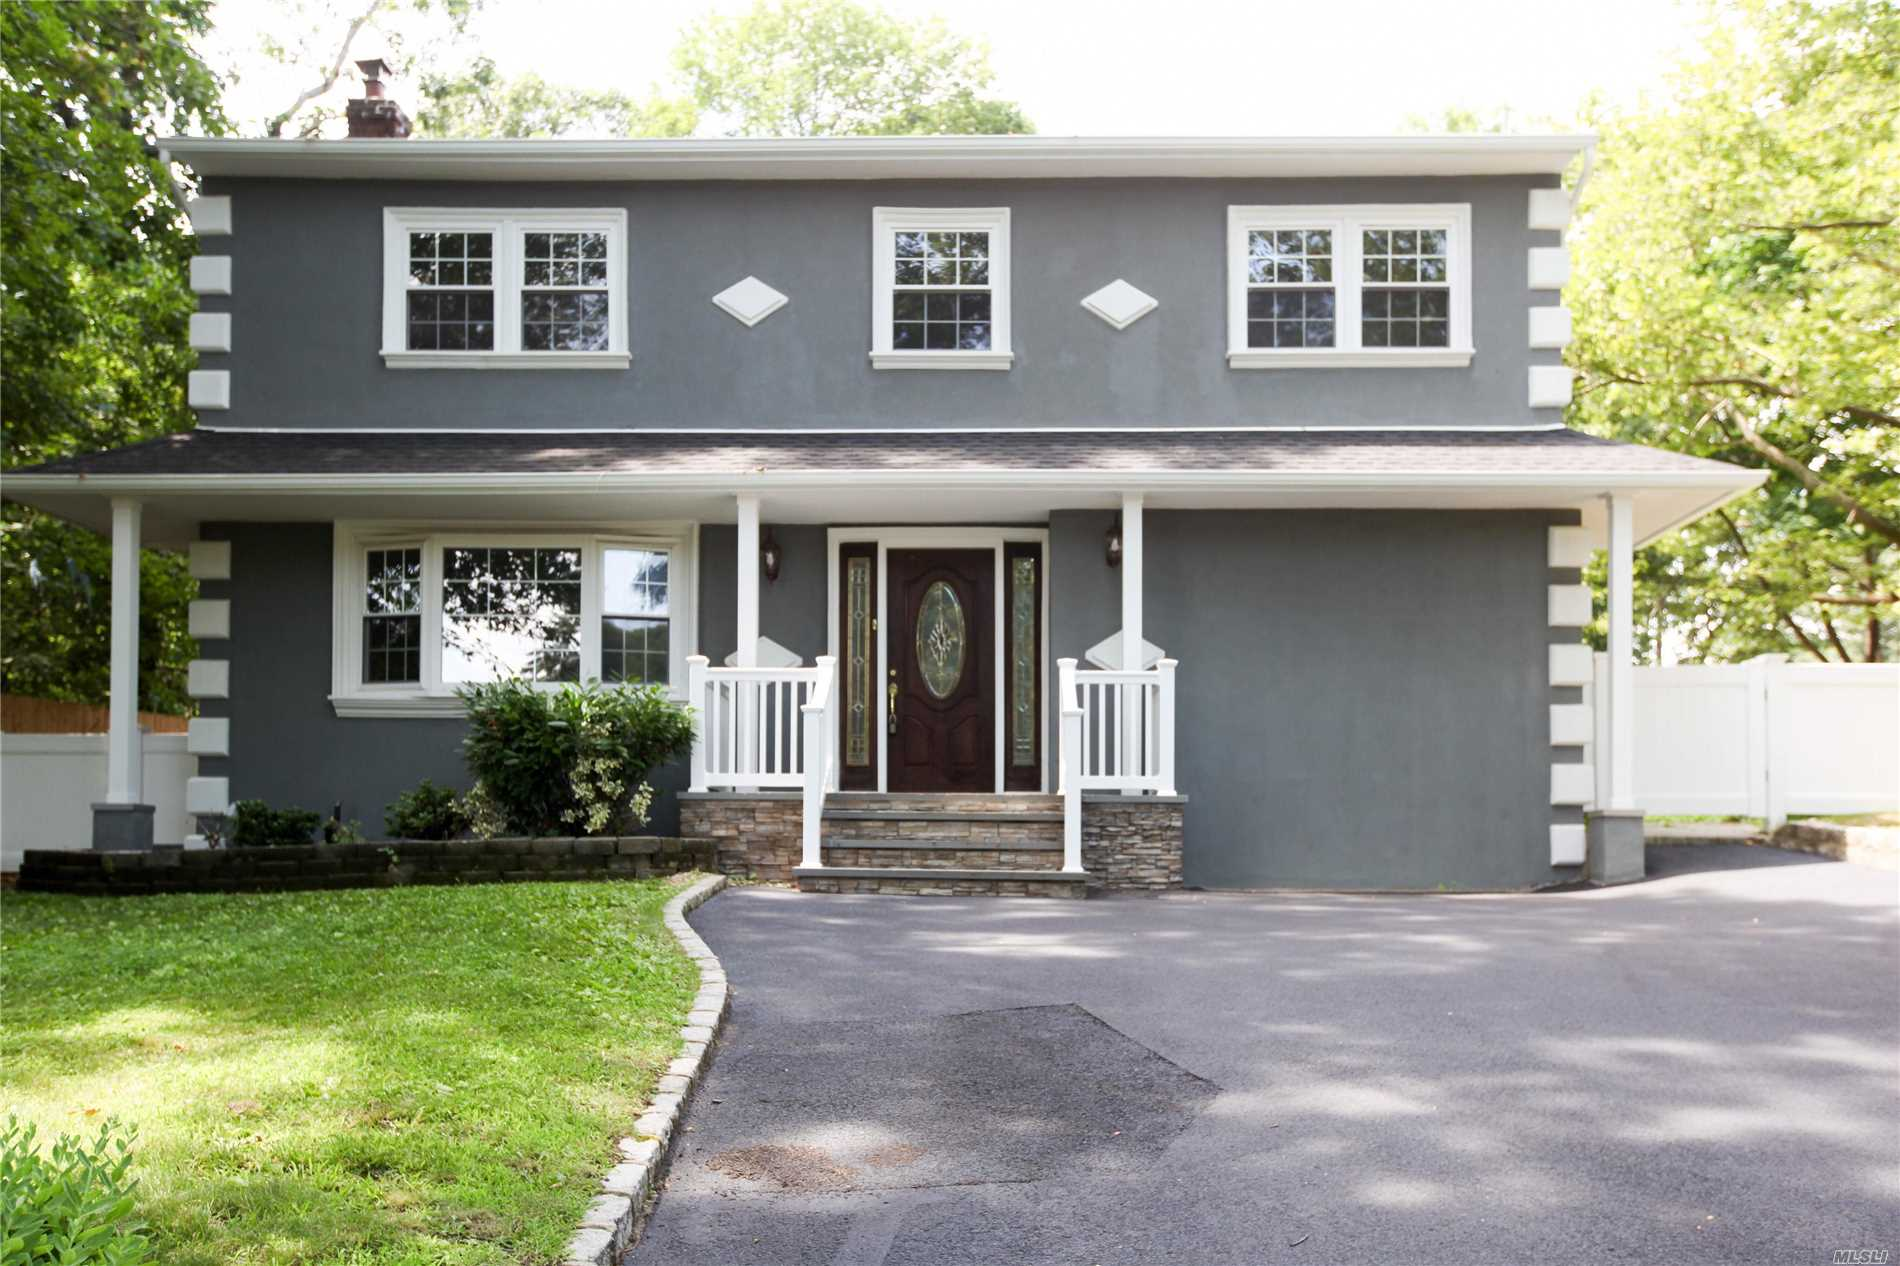 8 Pia Blvd - Smithtown, New York